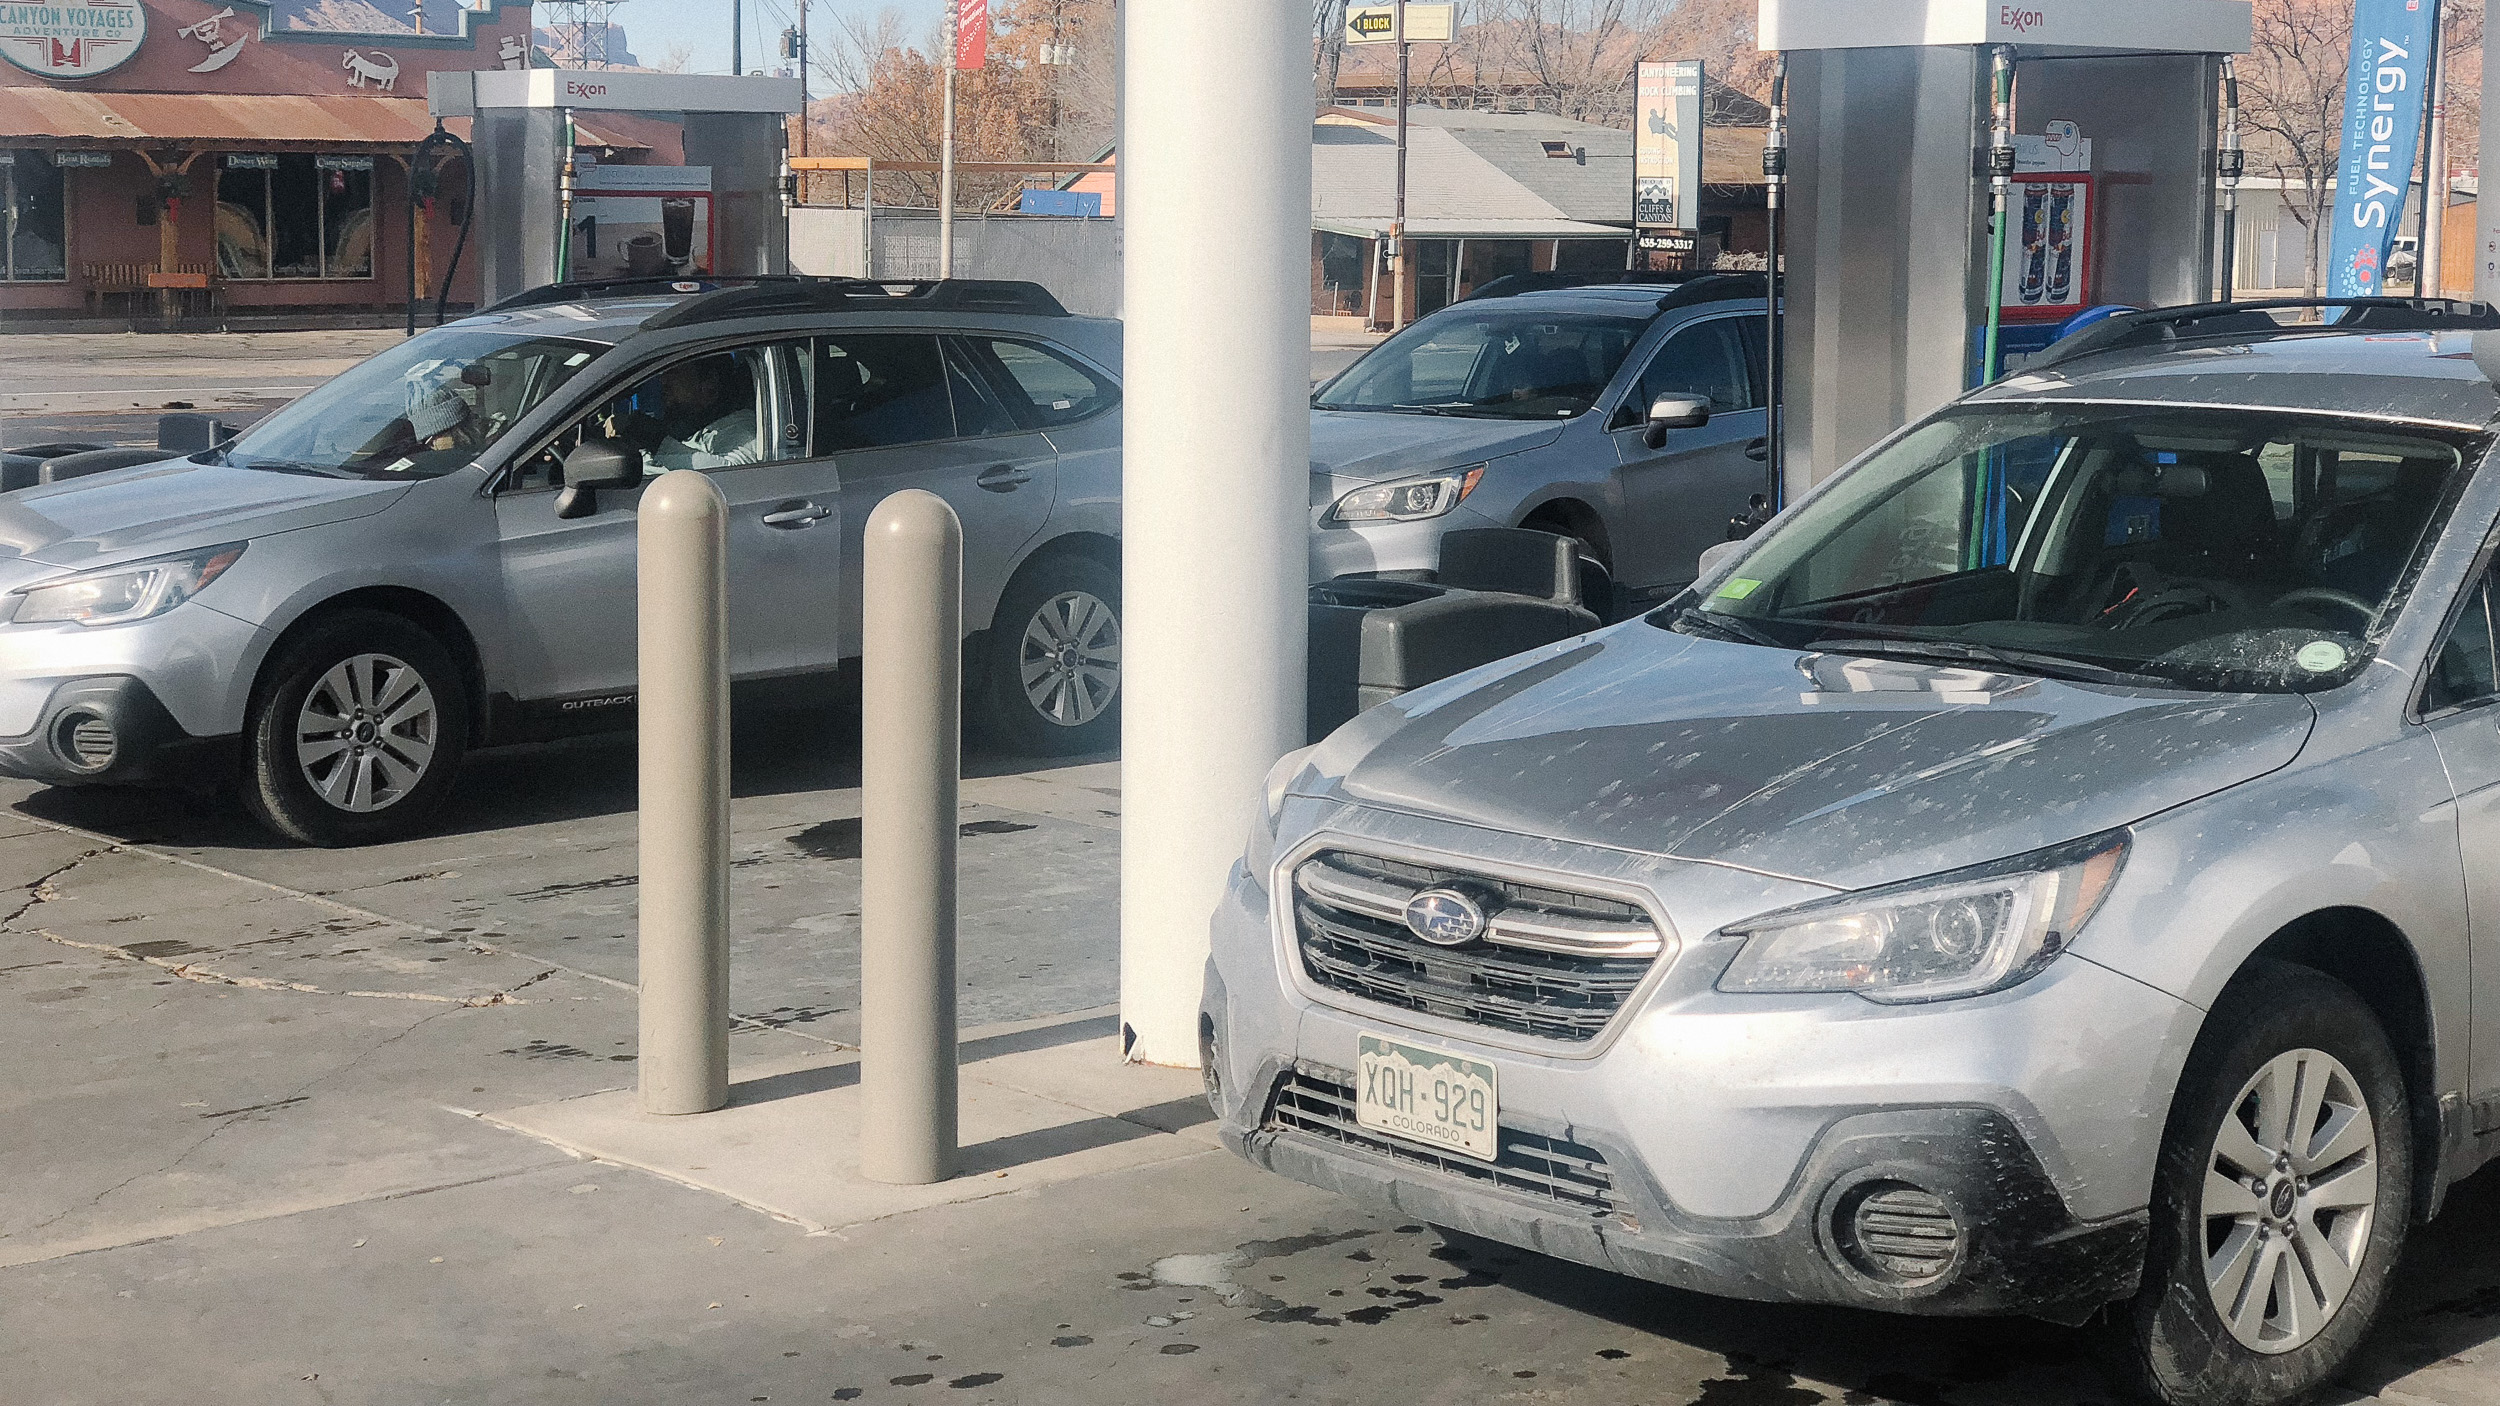 You know you're in Moab when you pull into a gas station 100% occupied by identical silver Subaru Outbacks… Mine was the dirtiest though, so I'm pretty sure I won.